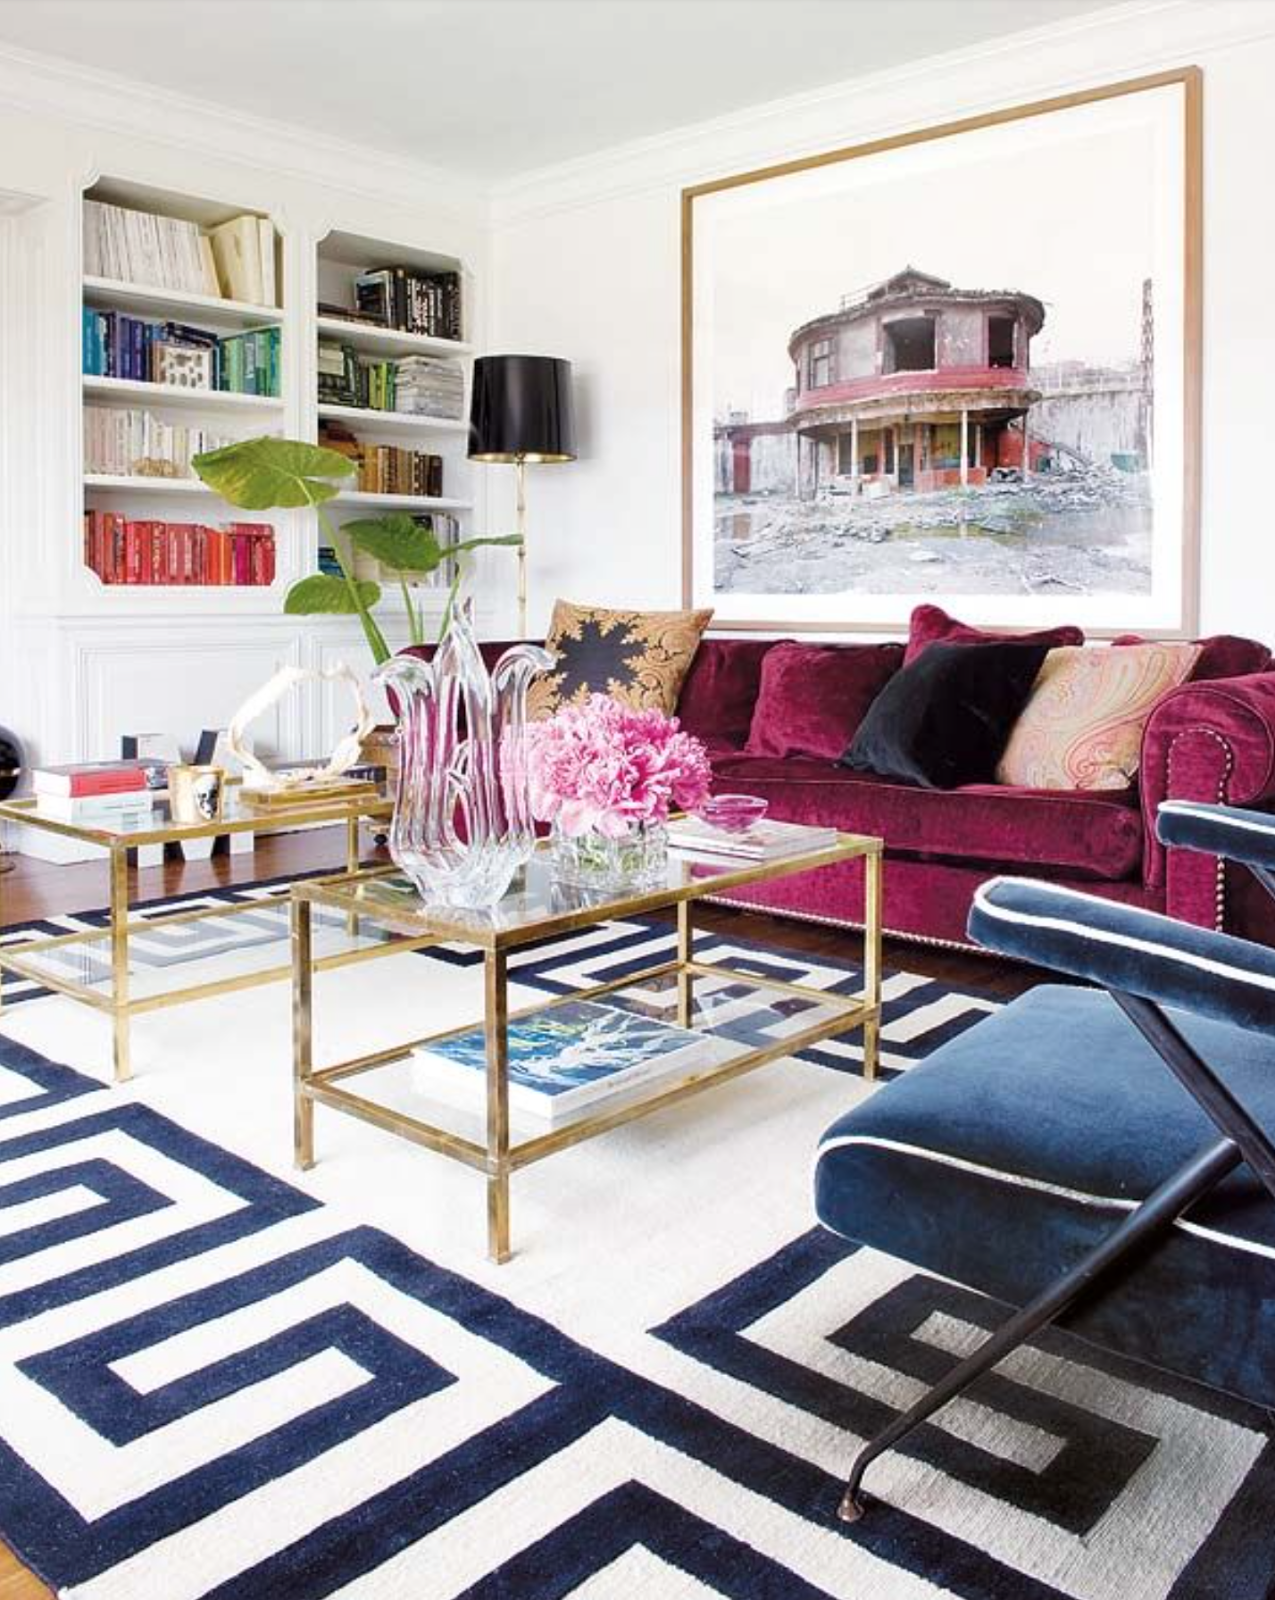 Magenta Velvet Couch Blue Chairs Living Room Gold Brass Coffee Table Blue White Carpet Jewel Tones Color